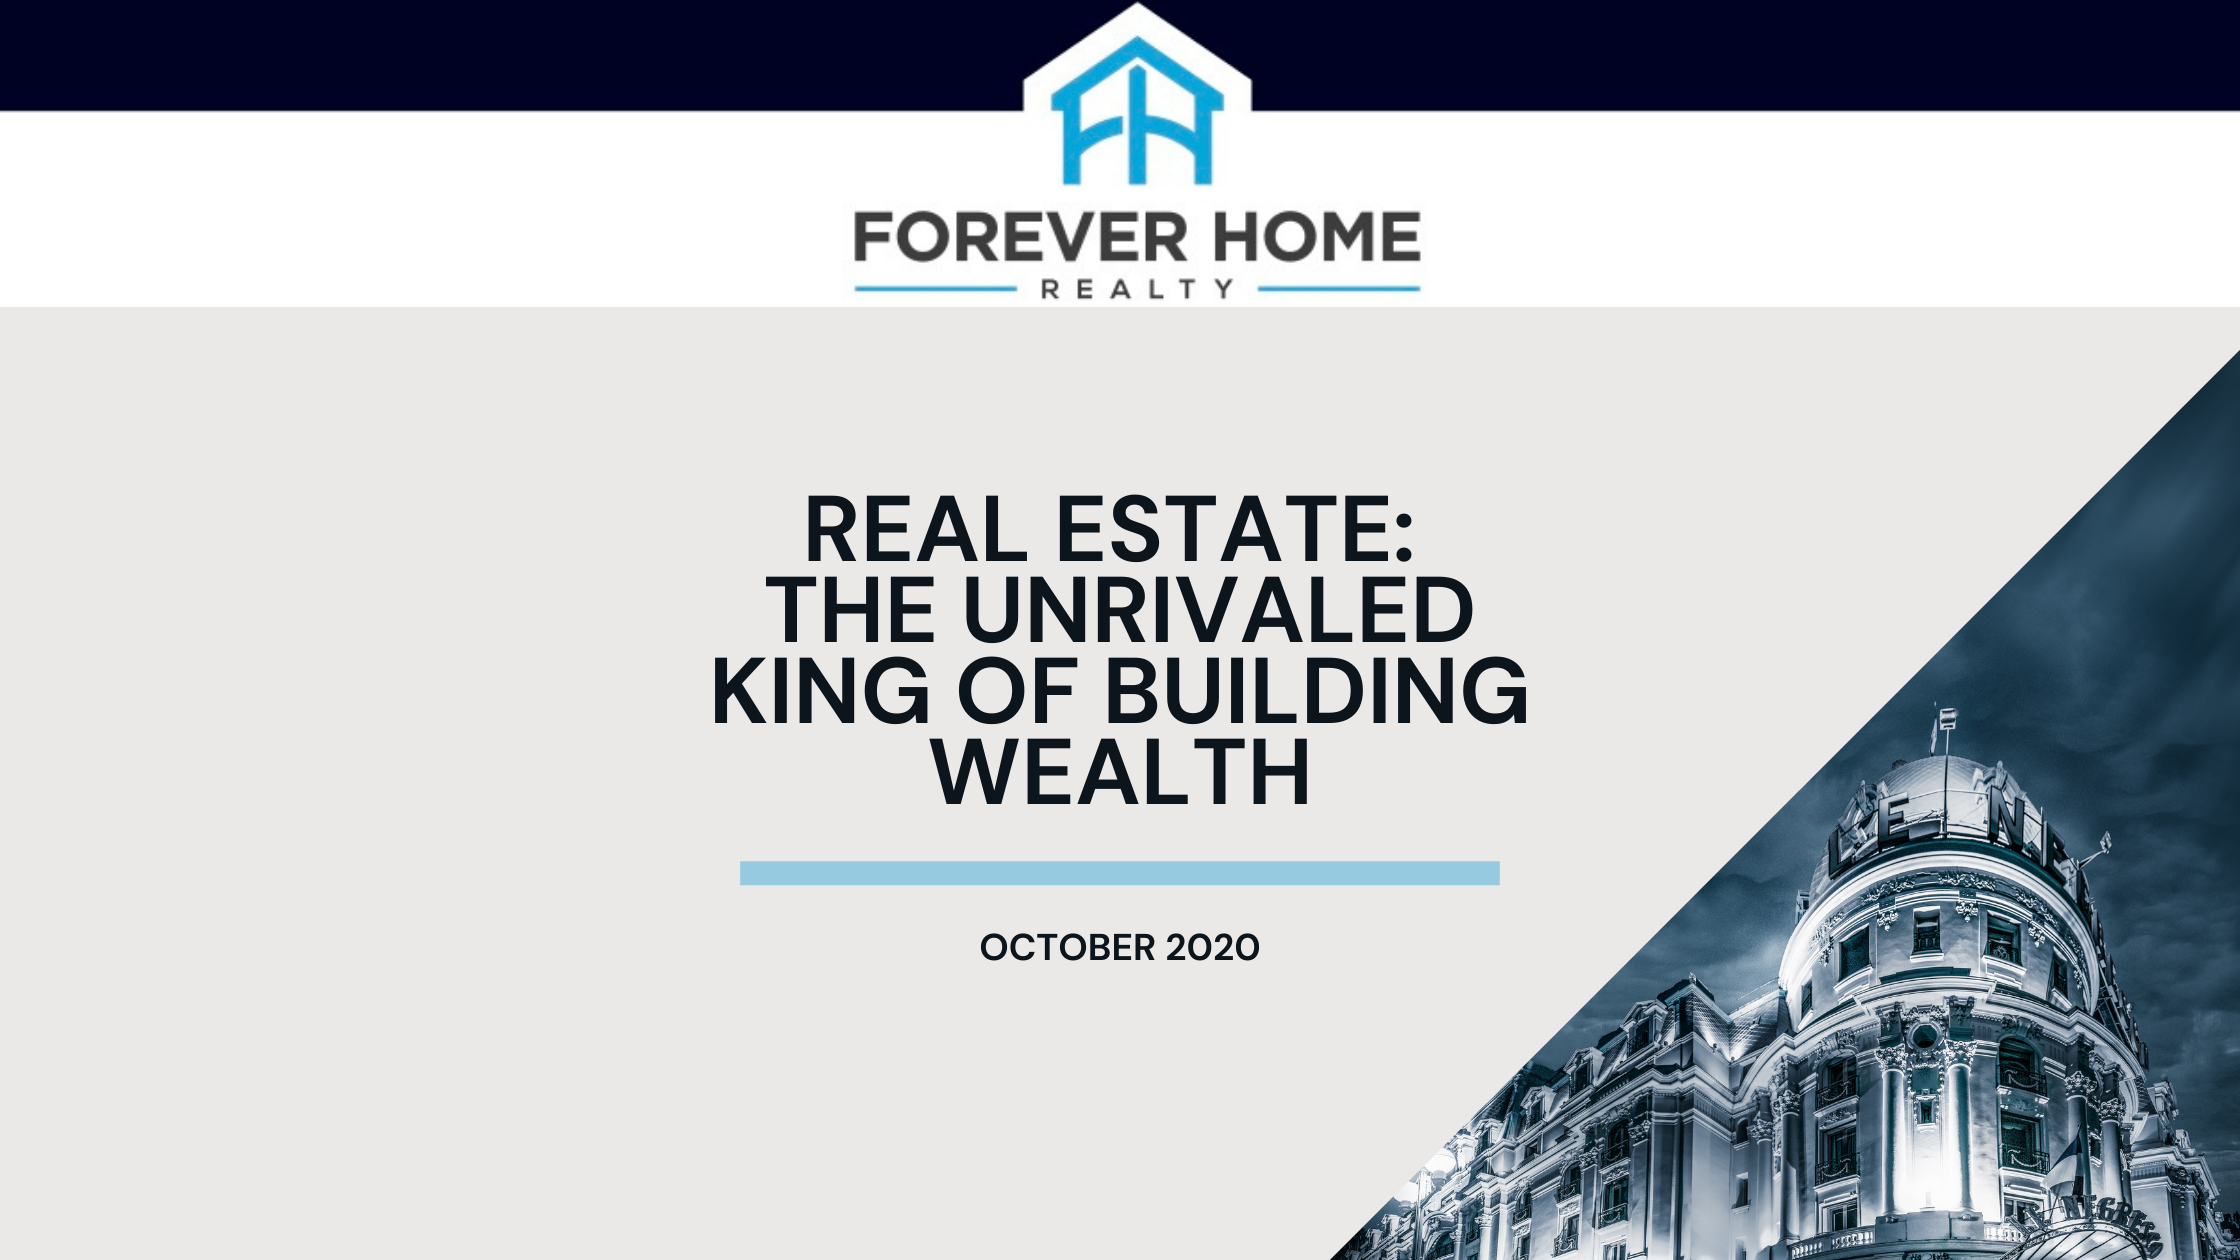 Real Estate: The Unrivaled King of Building Wealth